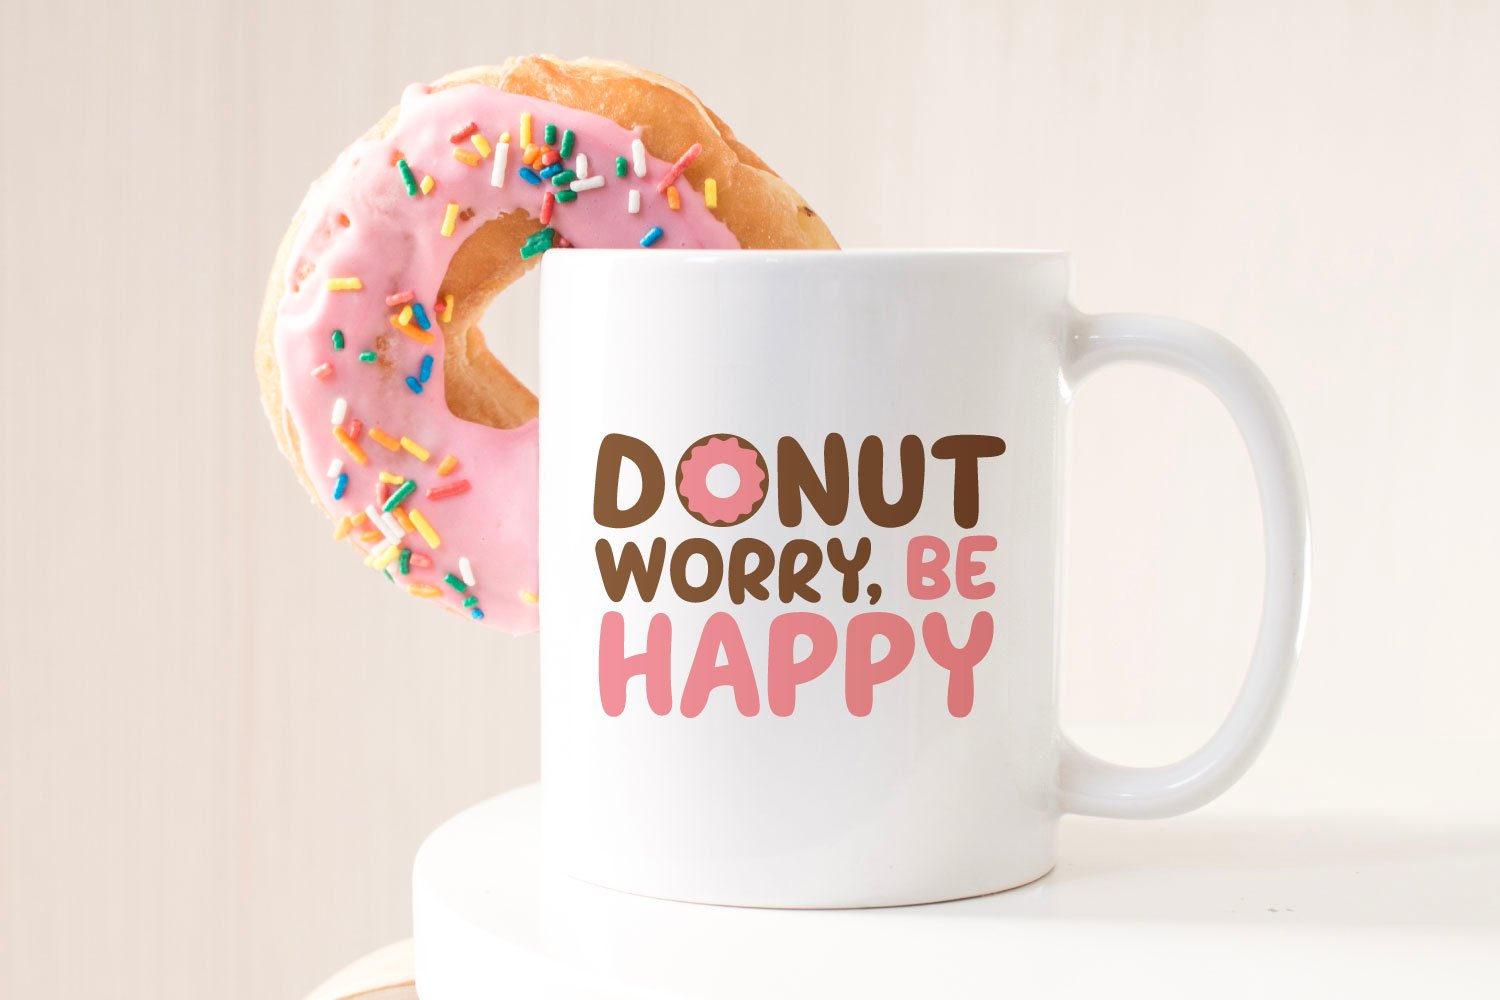 Donut SVG on a coffee mug with donut